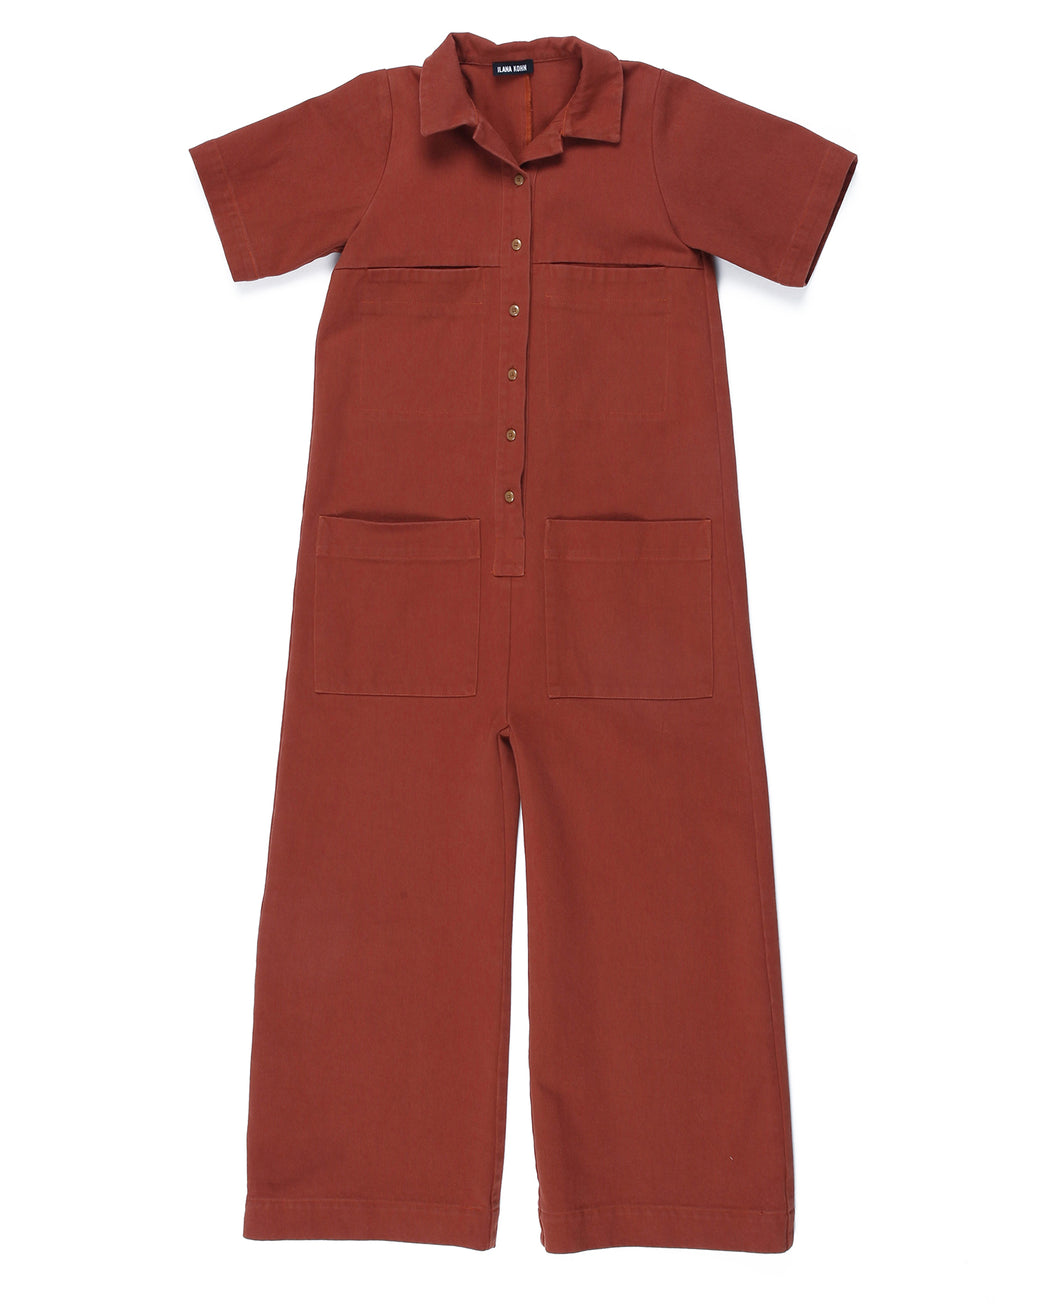 Mabel Coverall – Terra